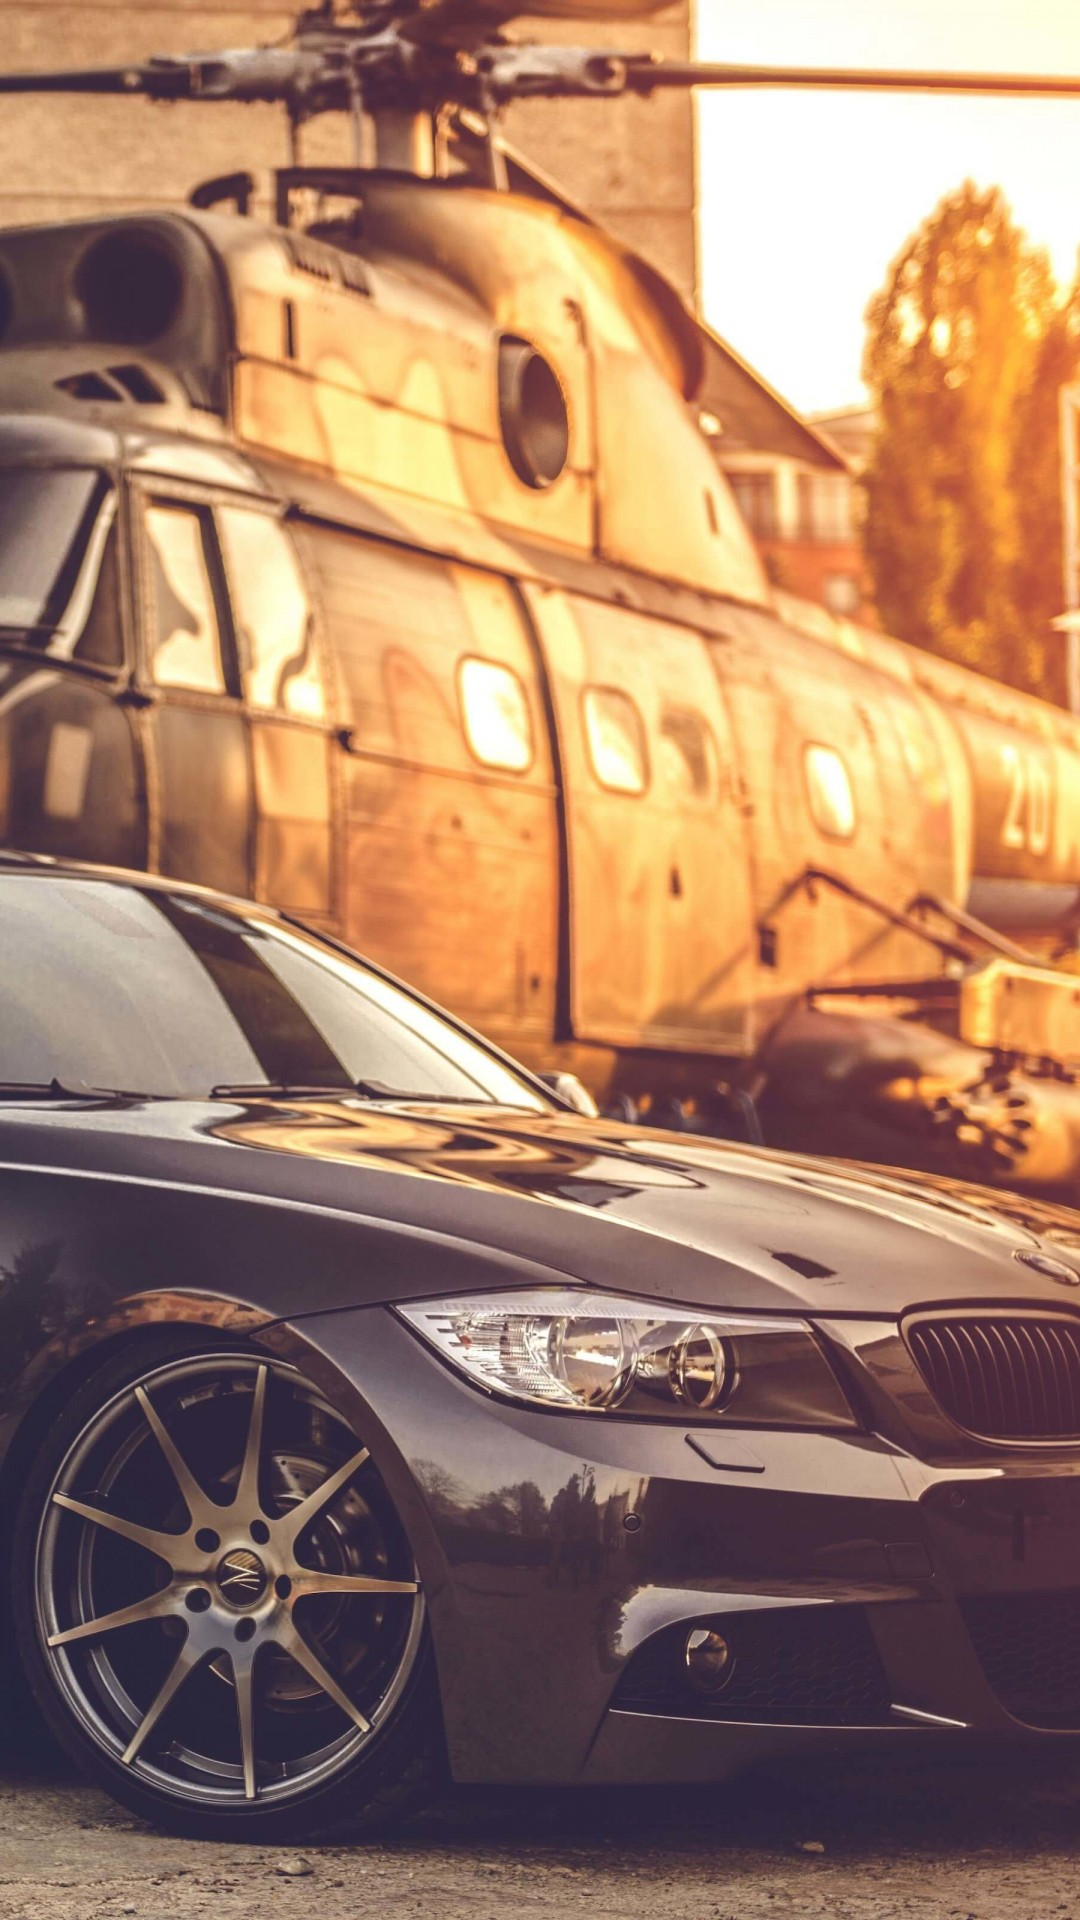 BMW E90 on Z-Performance Wheels Wallpaper for SAMSUNG Galaxy S5